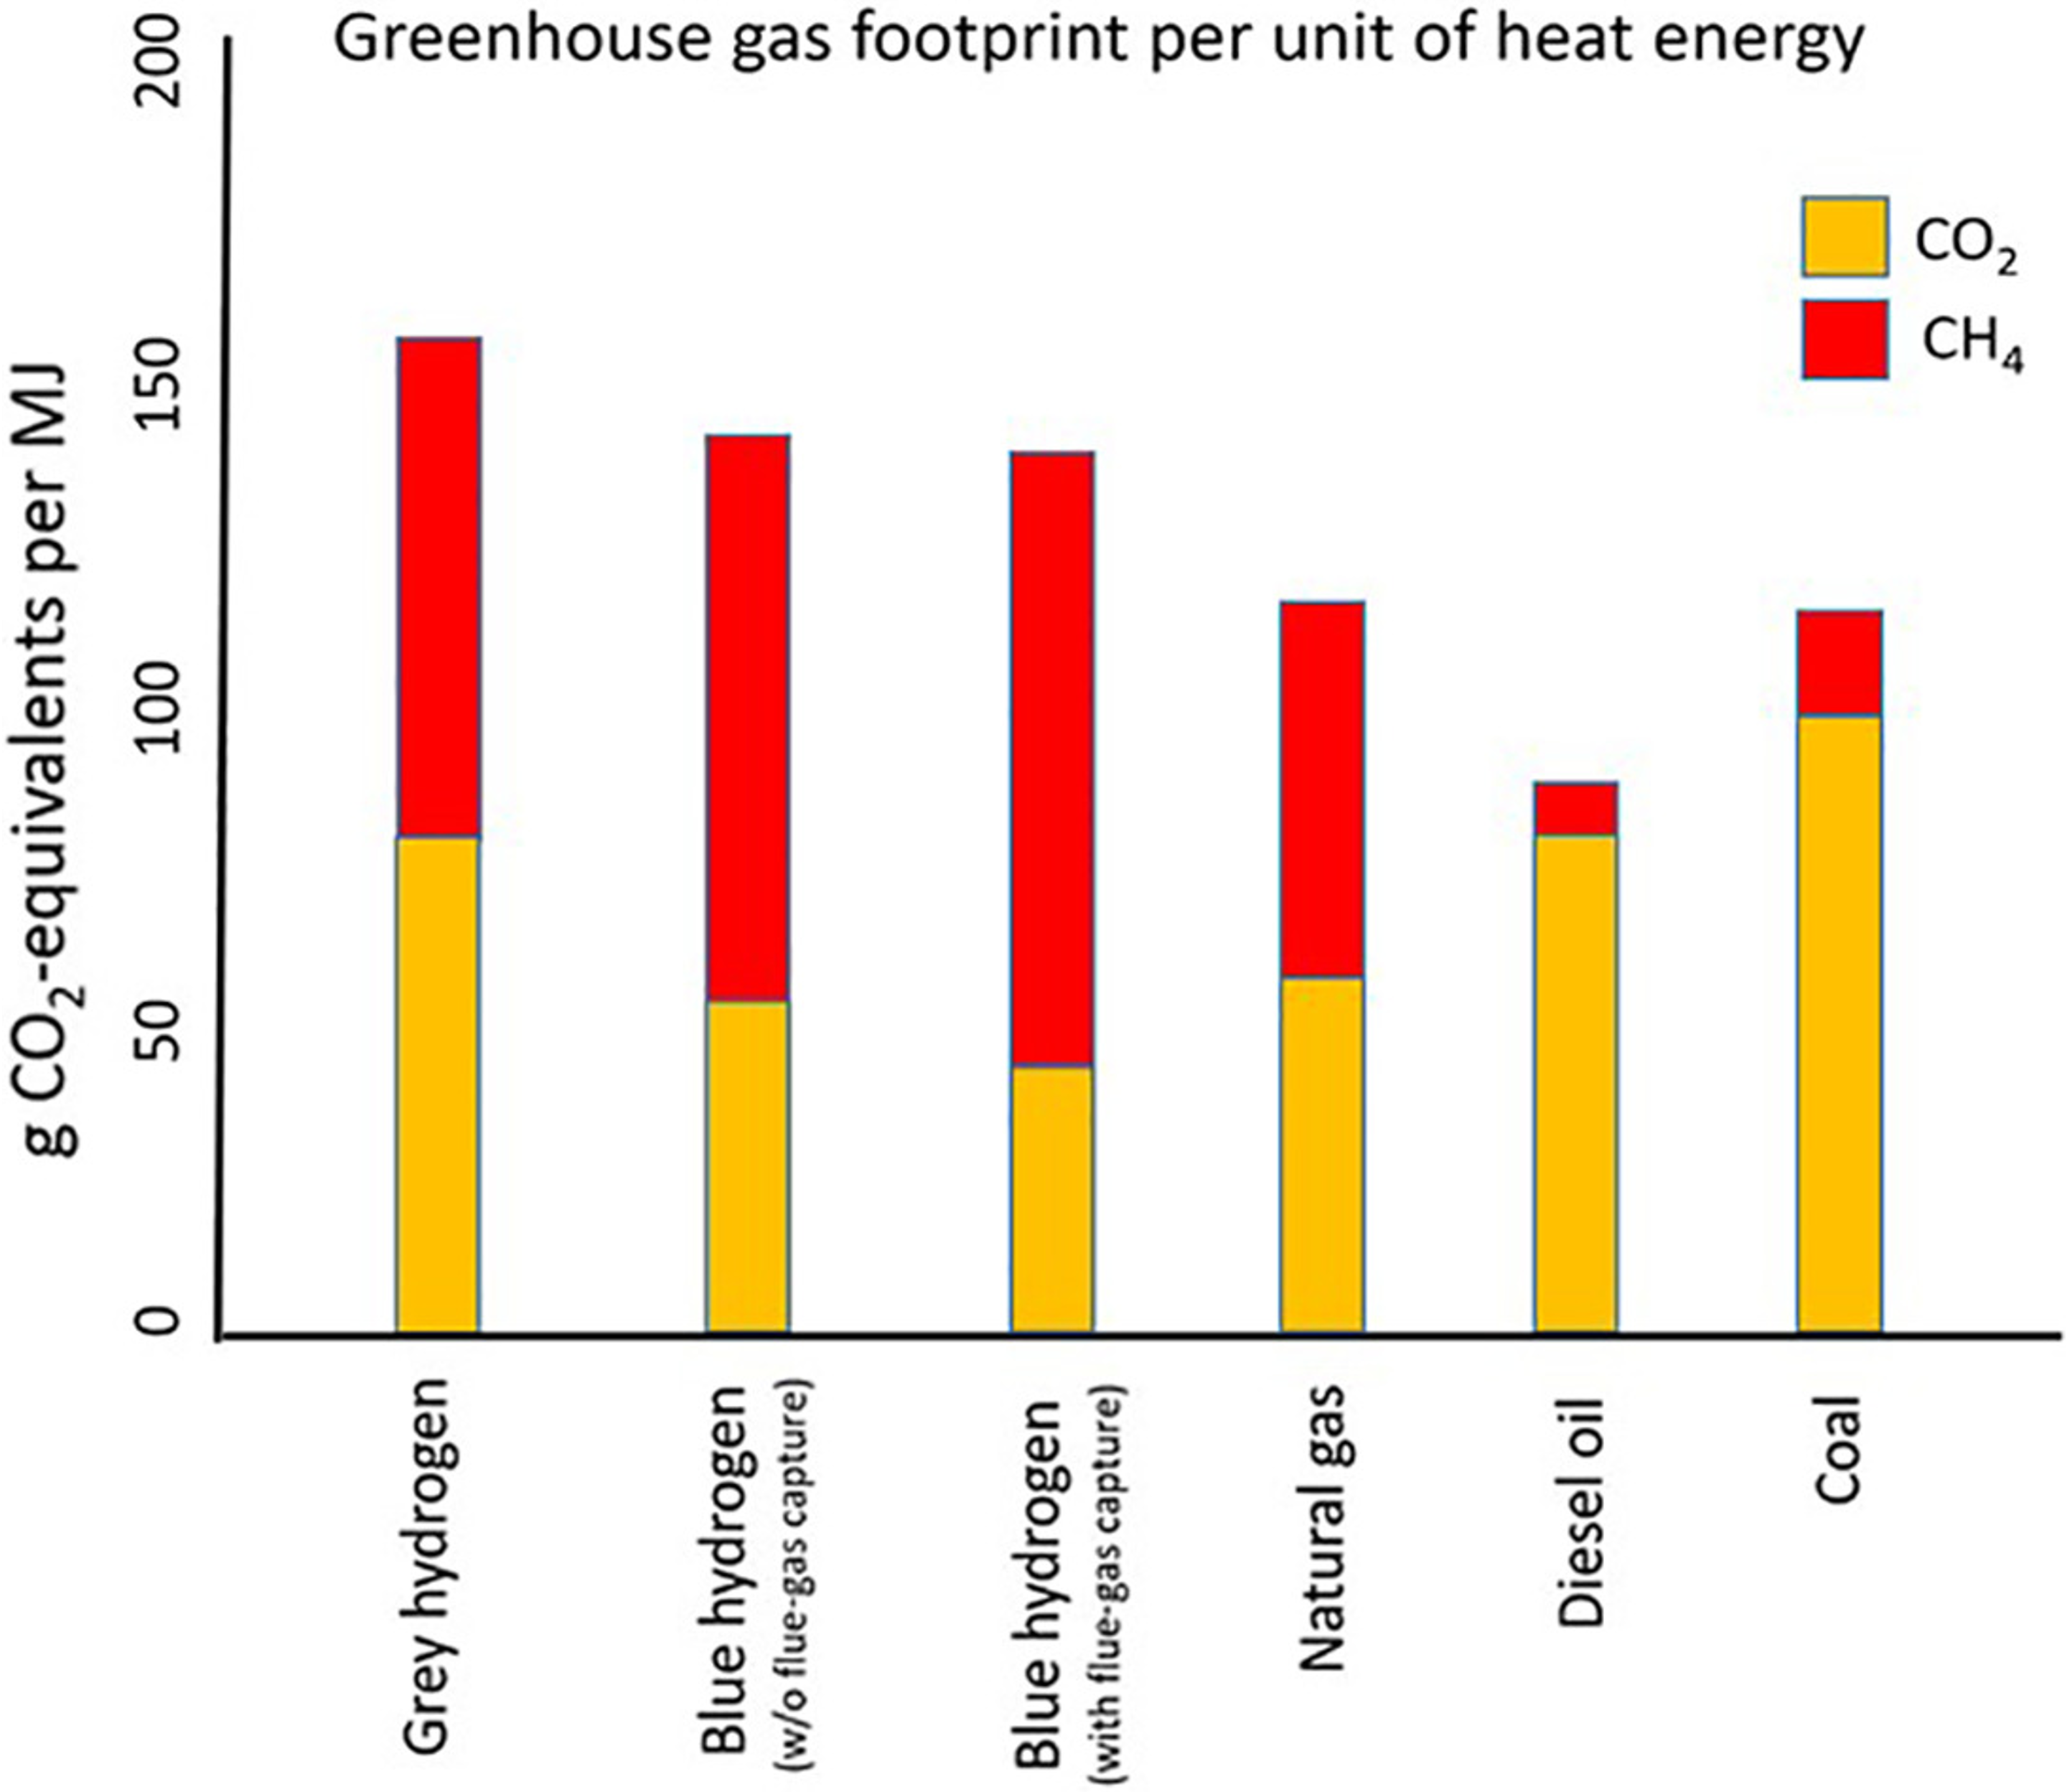 Comparison of carbon emissions from gray hydrogen, blue hydrogen with partial carbon capture, blue hydrogen with more complete carbon capture, natural gas burned for heat generation, diesel oil burned for heat, and coal burned for heat. Carbon emissions, including from developing, processing, and transporting fuels, are shown in orange. Carbon emissions of fugitive, unburned methane are shown in red.